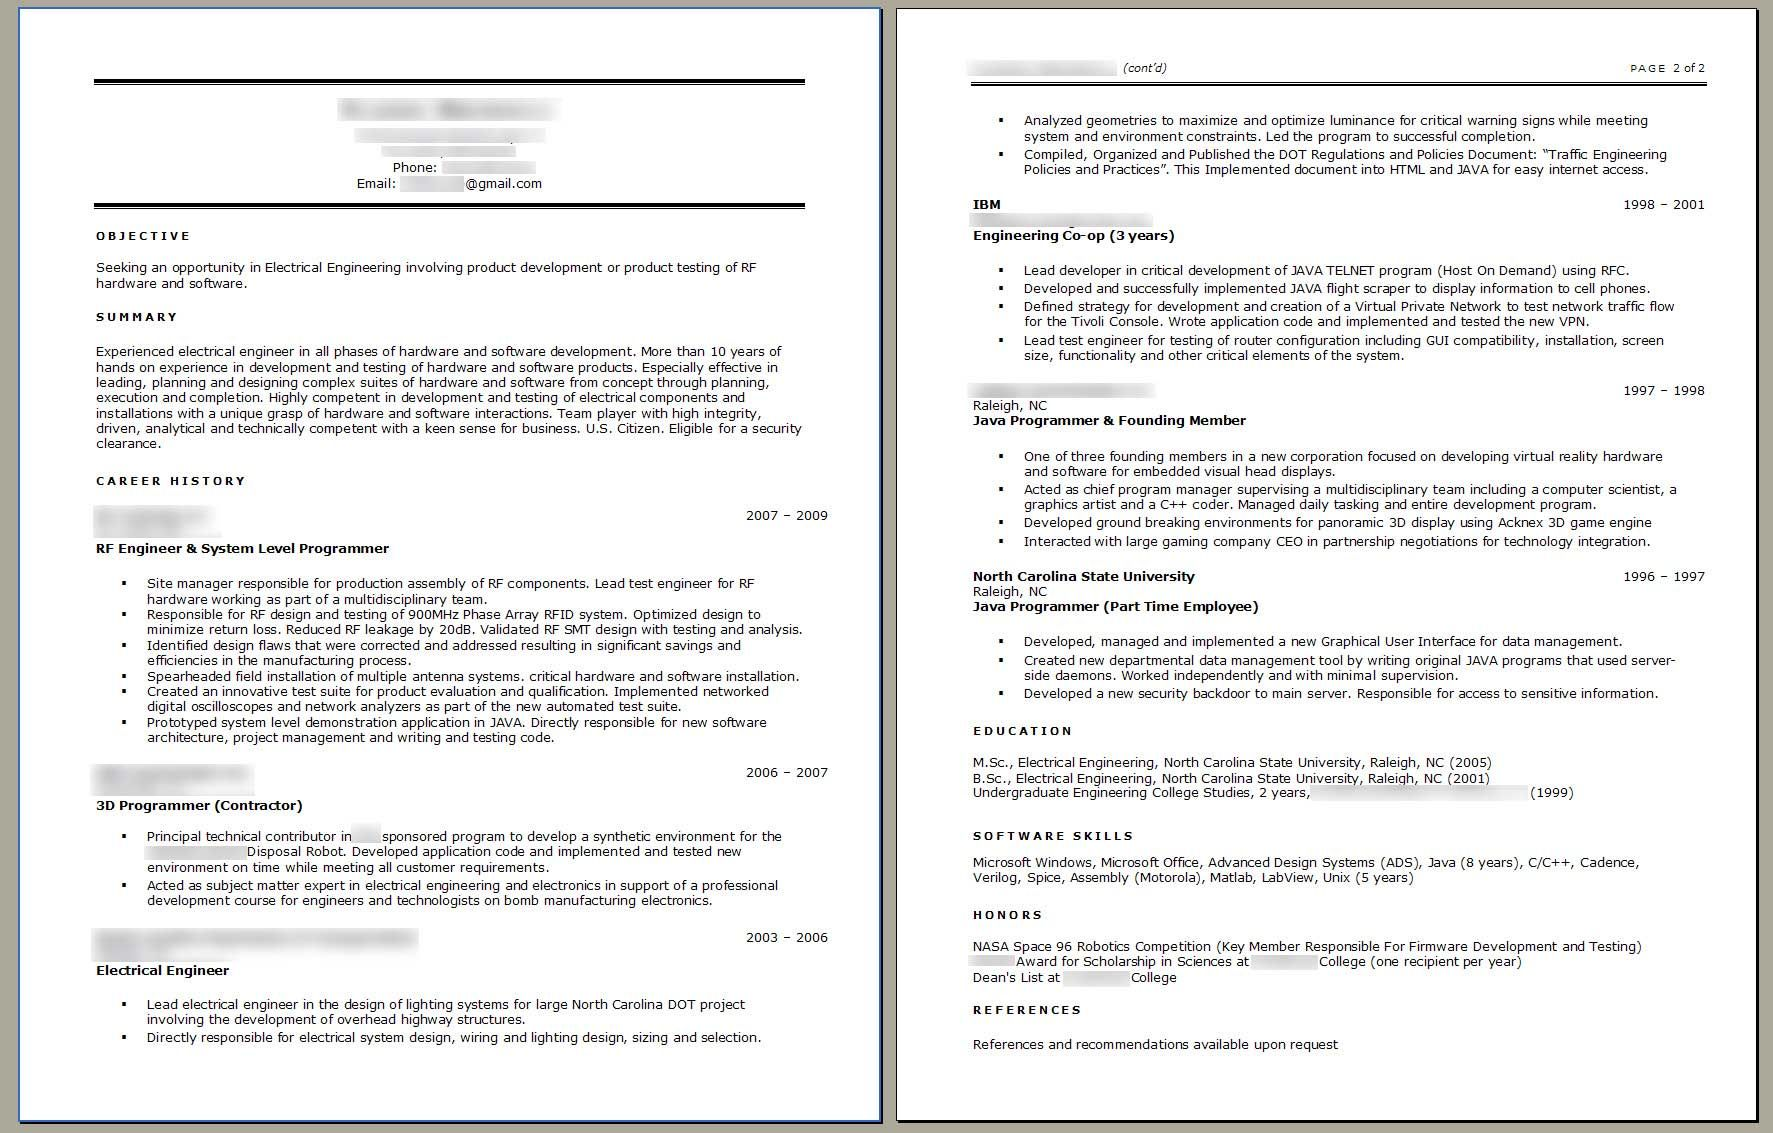 Resume examples electrical engineer